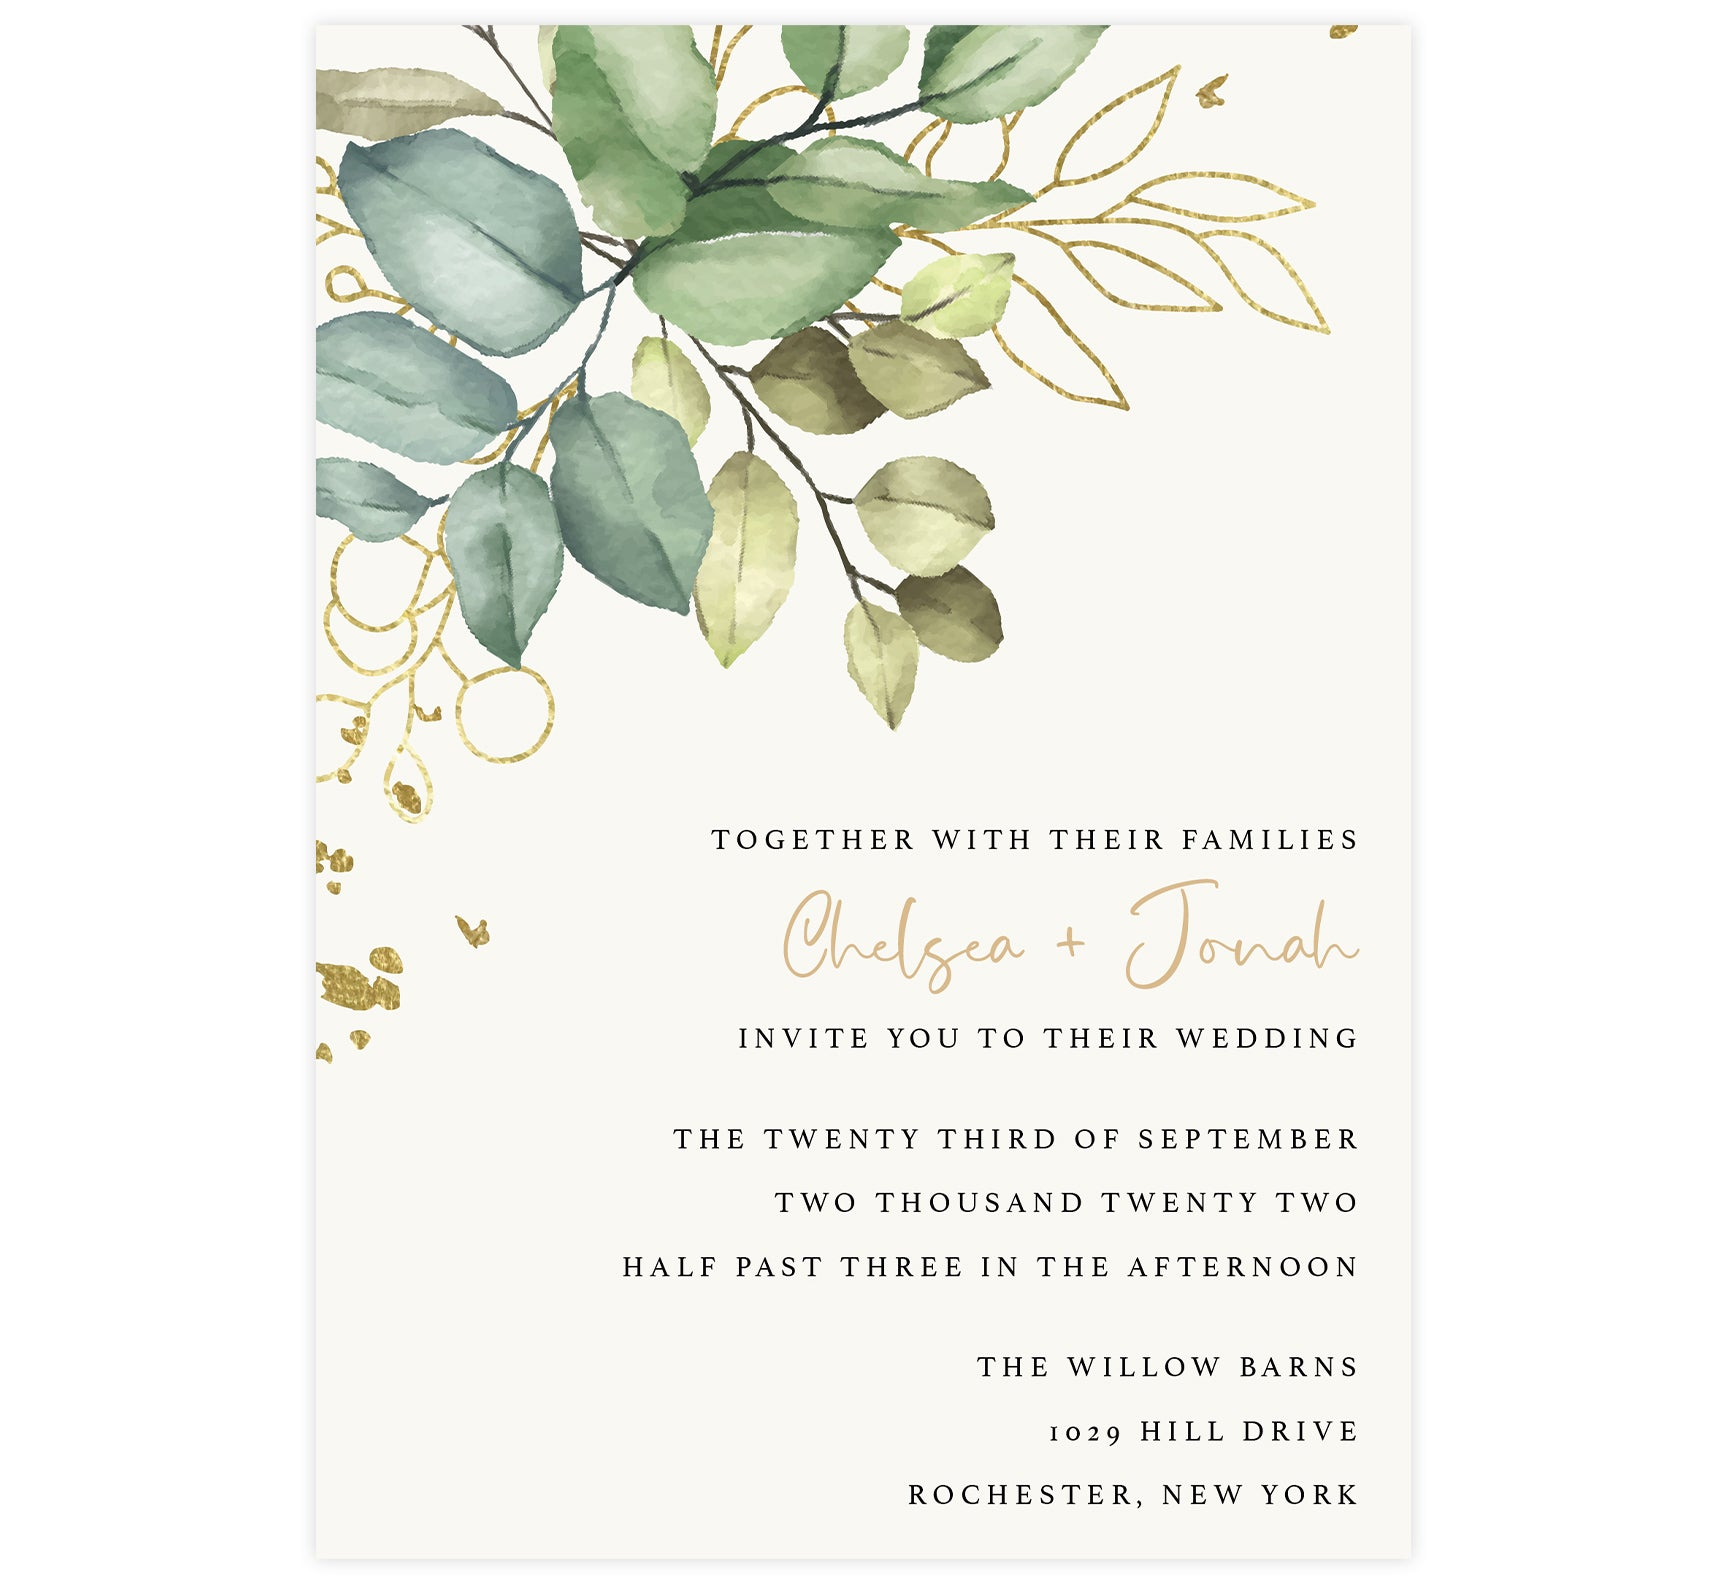 Greenery with Gold wedding invitation; cream background with large watercolor greenery and gold in the top left corner and black text with names in gold